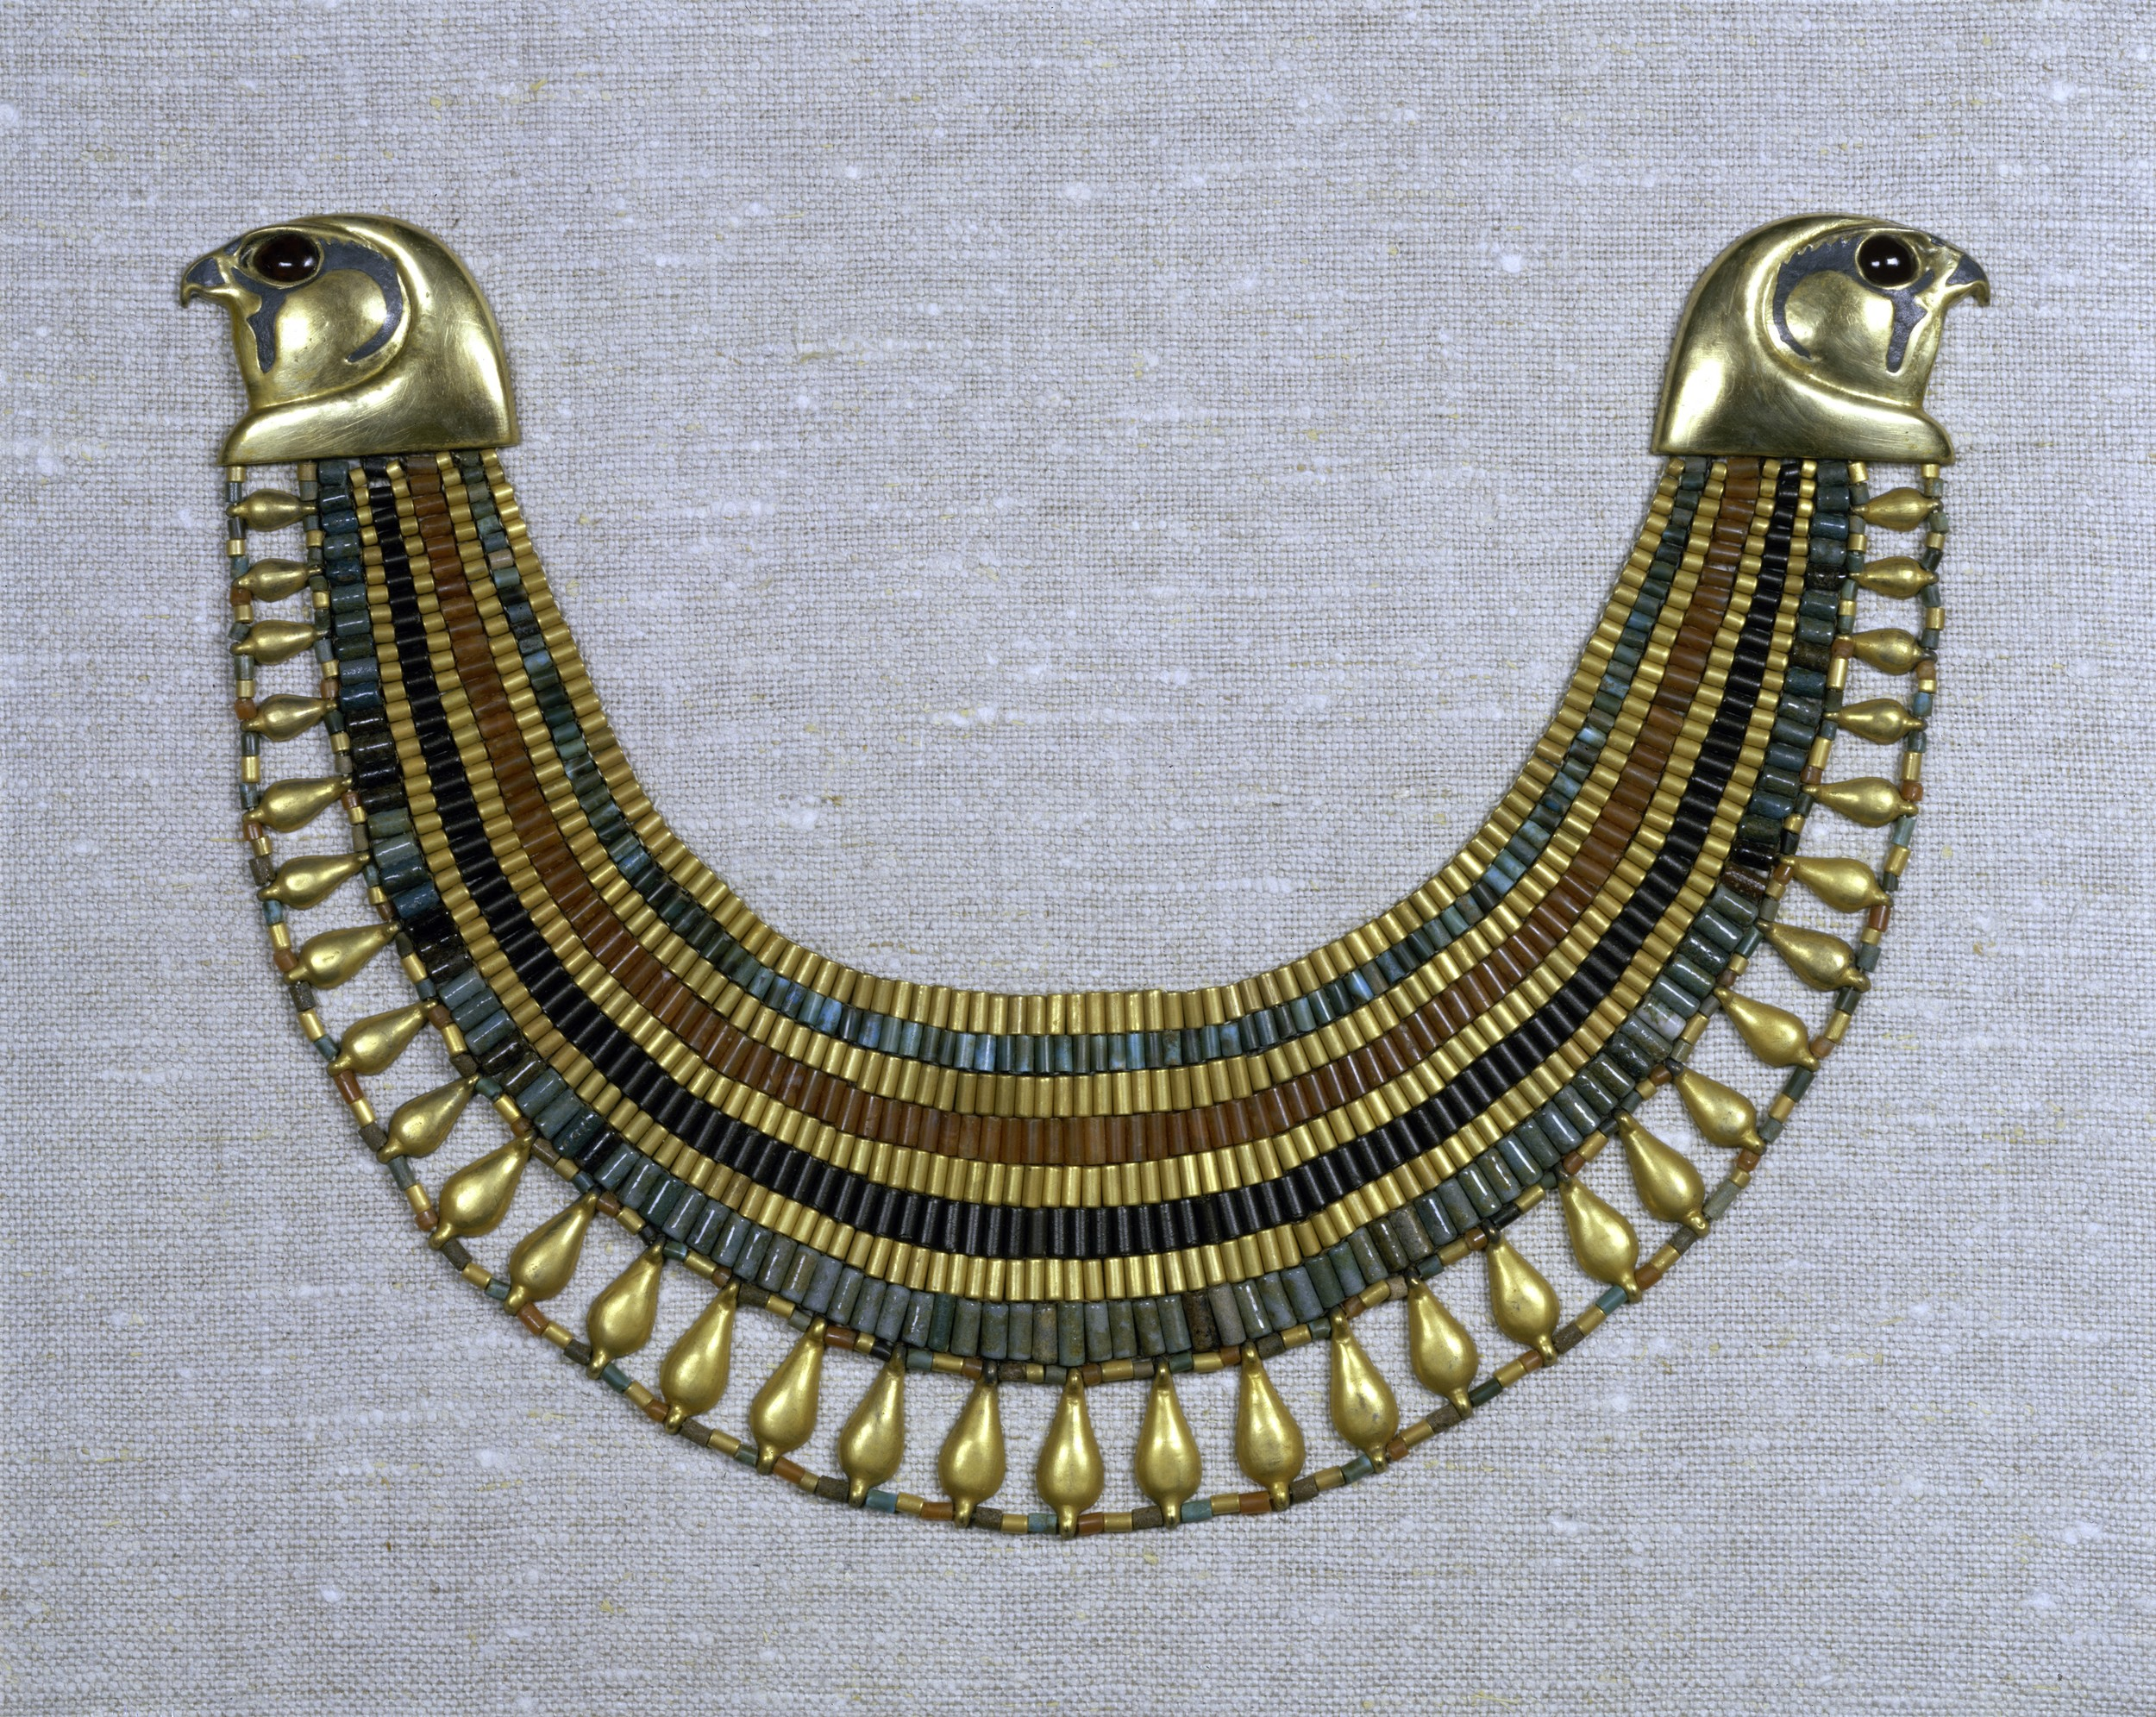 The beaded broad collar of Senebtisi (ca. 1850-1775 BCE), made to fit the nape of the neck thanks to 2-dimensional contouring of the sort already present in Egypt by ca. 2500 BCE. Made of gold, carnelian, turquoise and faience, the collar is preserved at the Metropolitan Museum of New York as Accession No.  08.200.30. Image courtesy Metropolitan Museum of Art, New York.